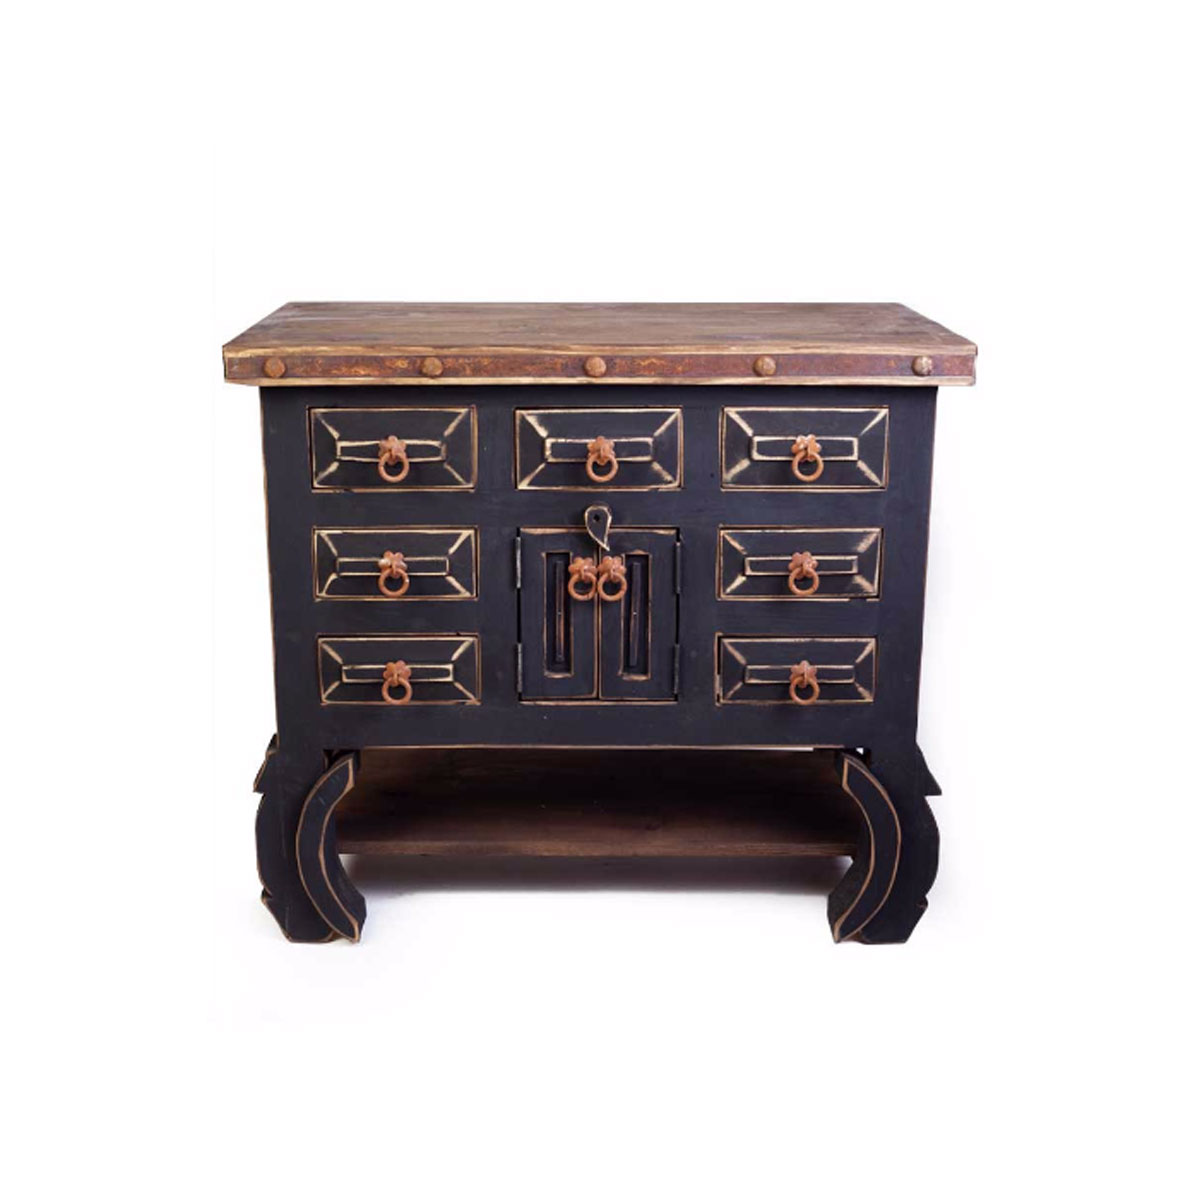 Rustic single sink bathroom vanities - 7 Drawer Black Rustic Vanity